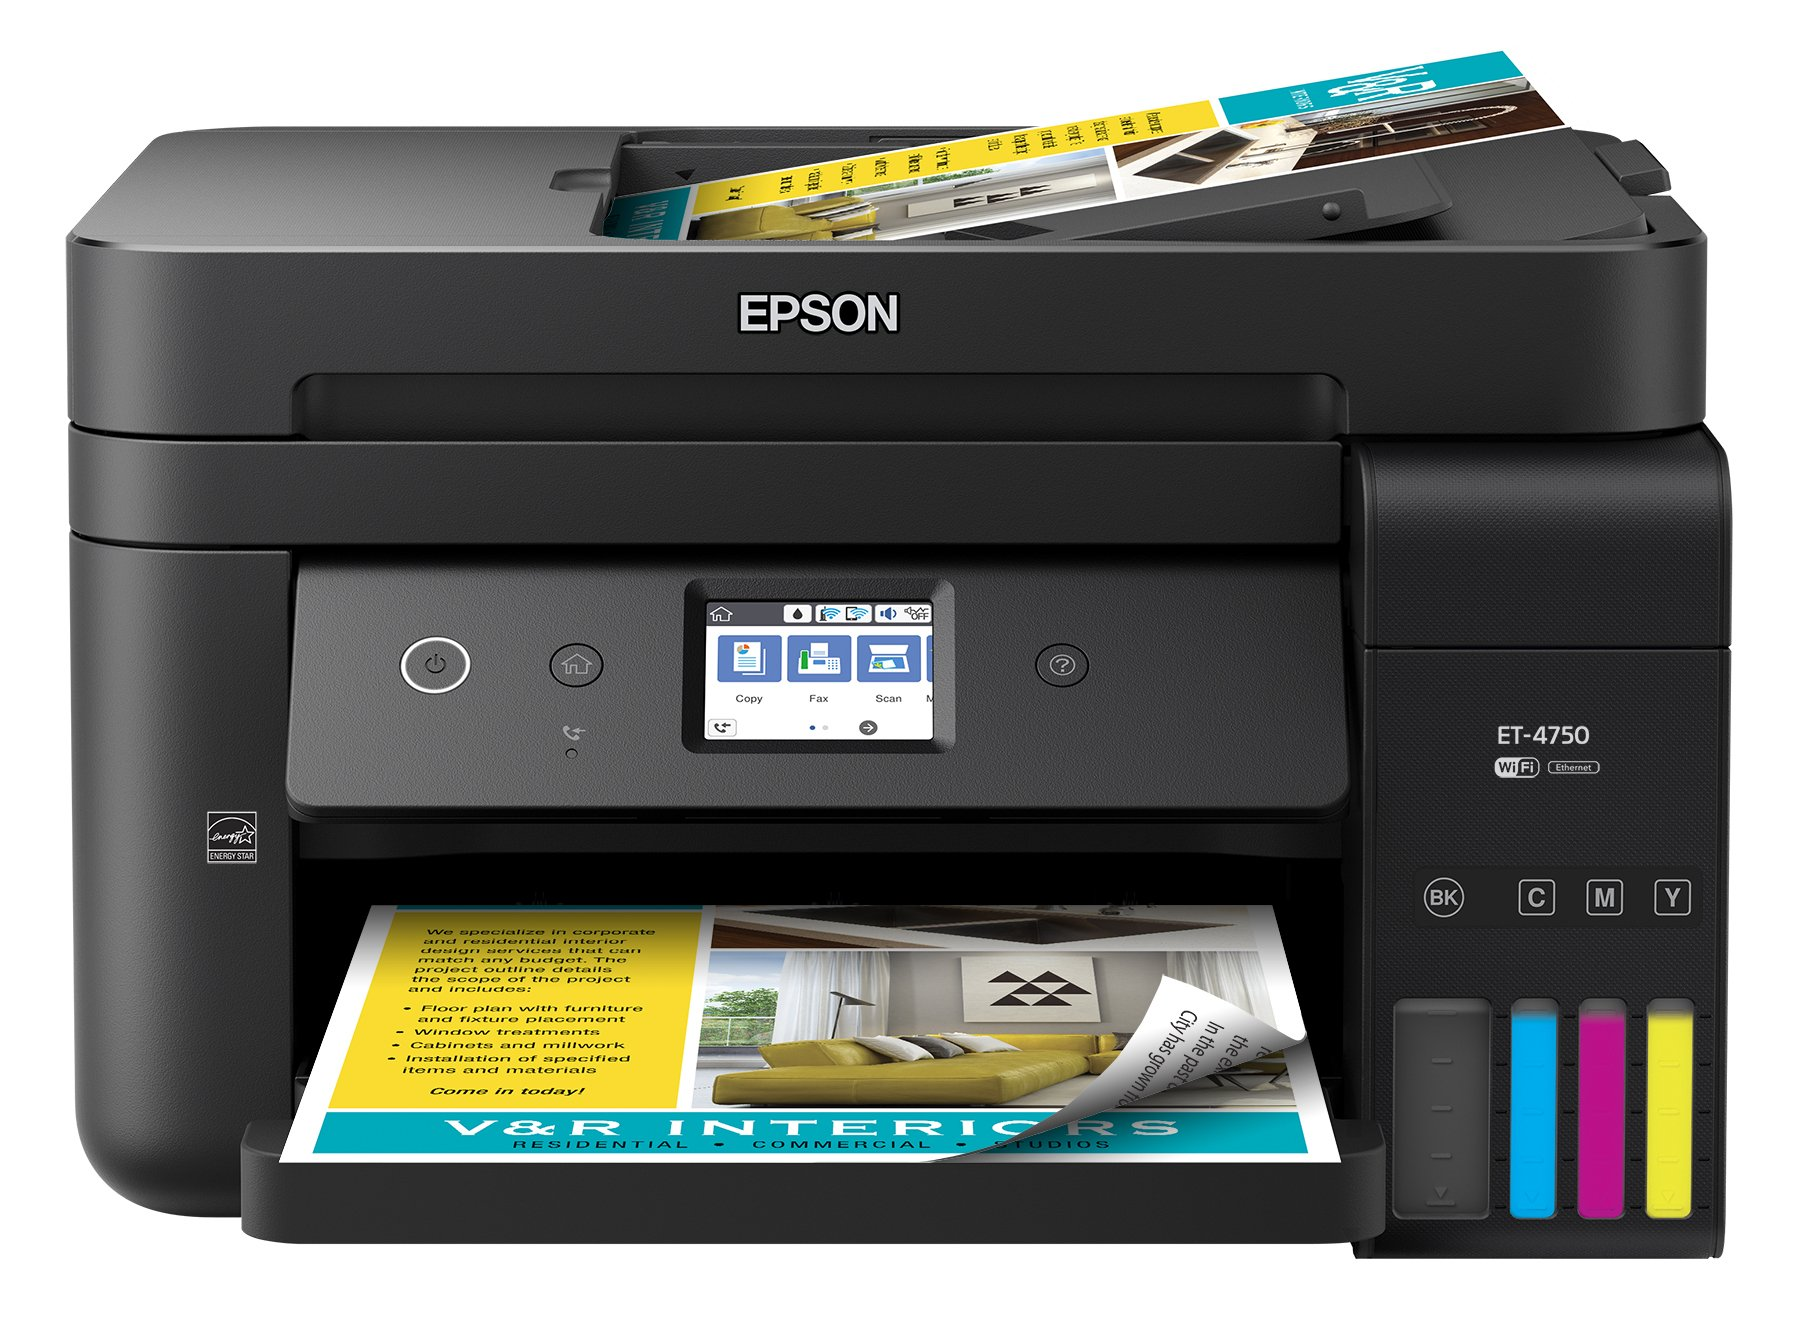 Epson WorkForce ET-4750 EcoTank Wireless Color All-in-One Supertank Printer with Scanner, Copier, Fax and Ethernet by Epson